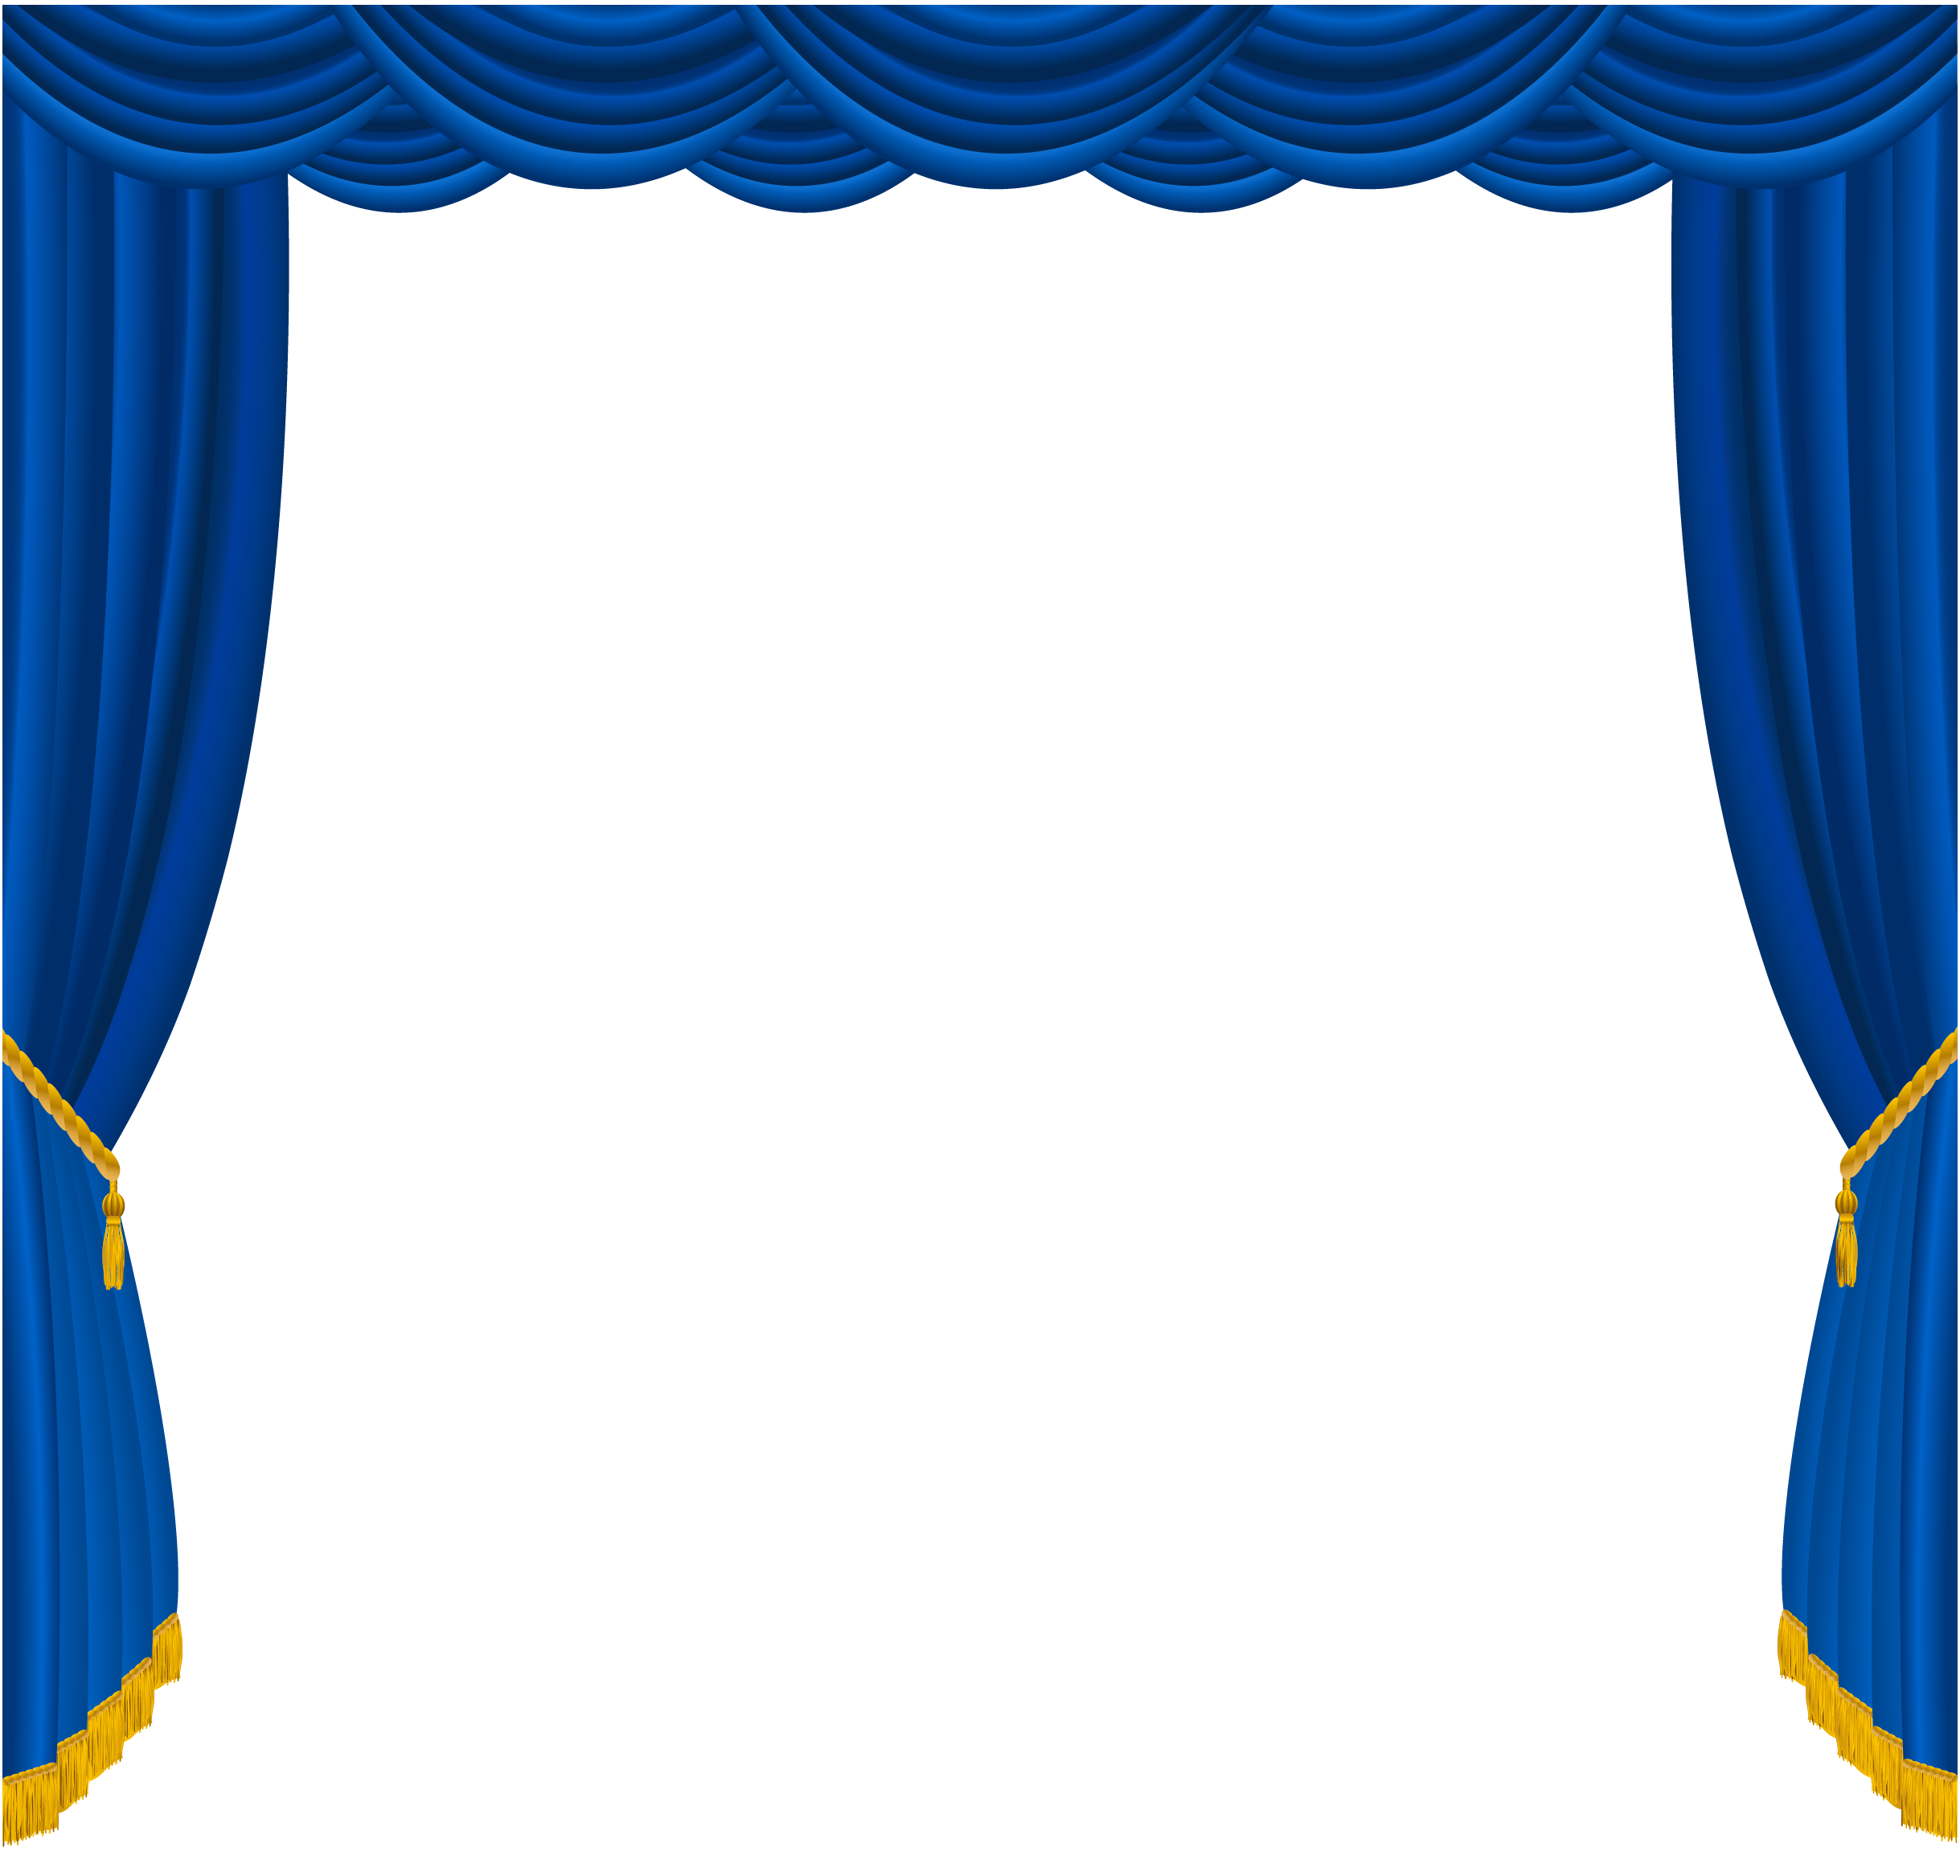 Transparent curtains decor png. Curtain clipart blue curtain jpg royalty free stock